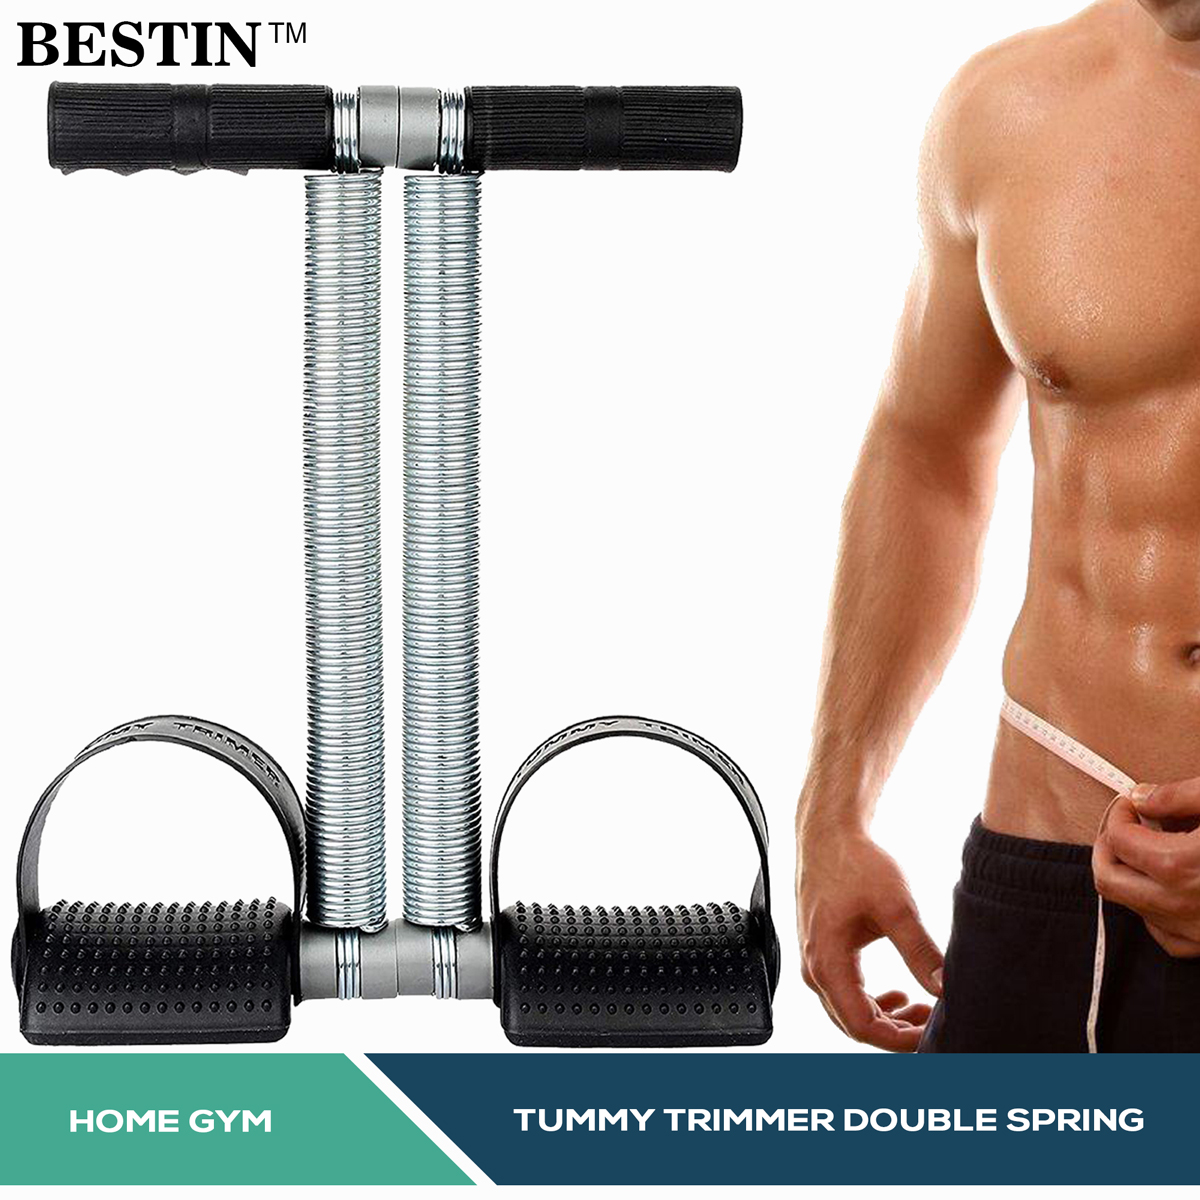 TUMMY TRIMMER BALLY FAT BURNER BODY EXERCISER WEIGH LOSS HOME GYM HOME WORKOUT ARM MUSCLE BUILDER SINGLE AND DOUBLE SPRING